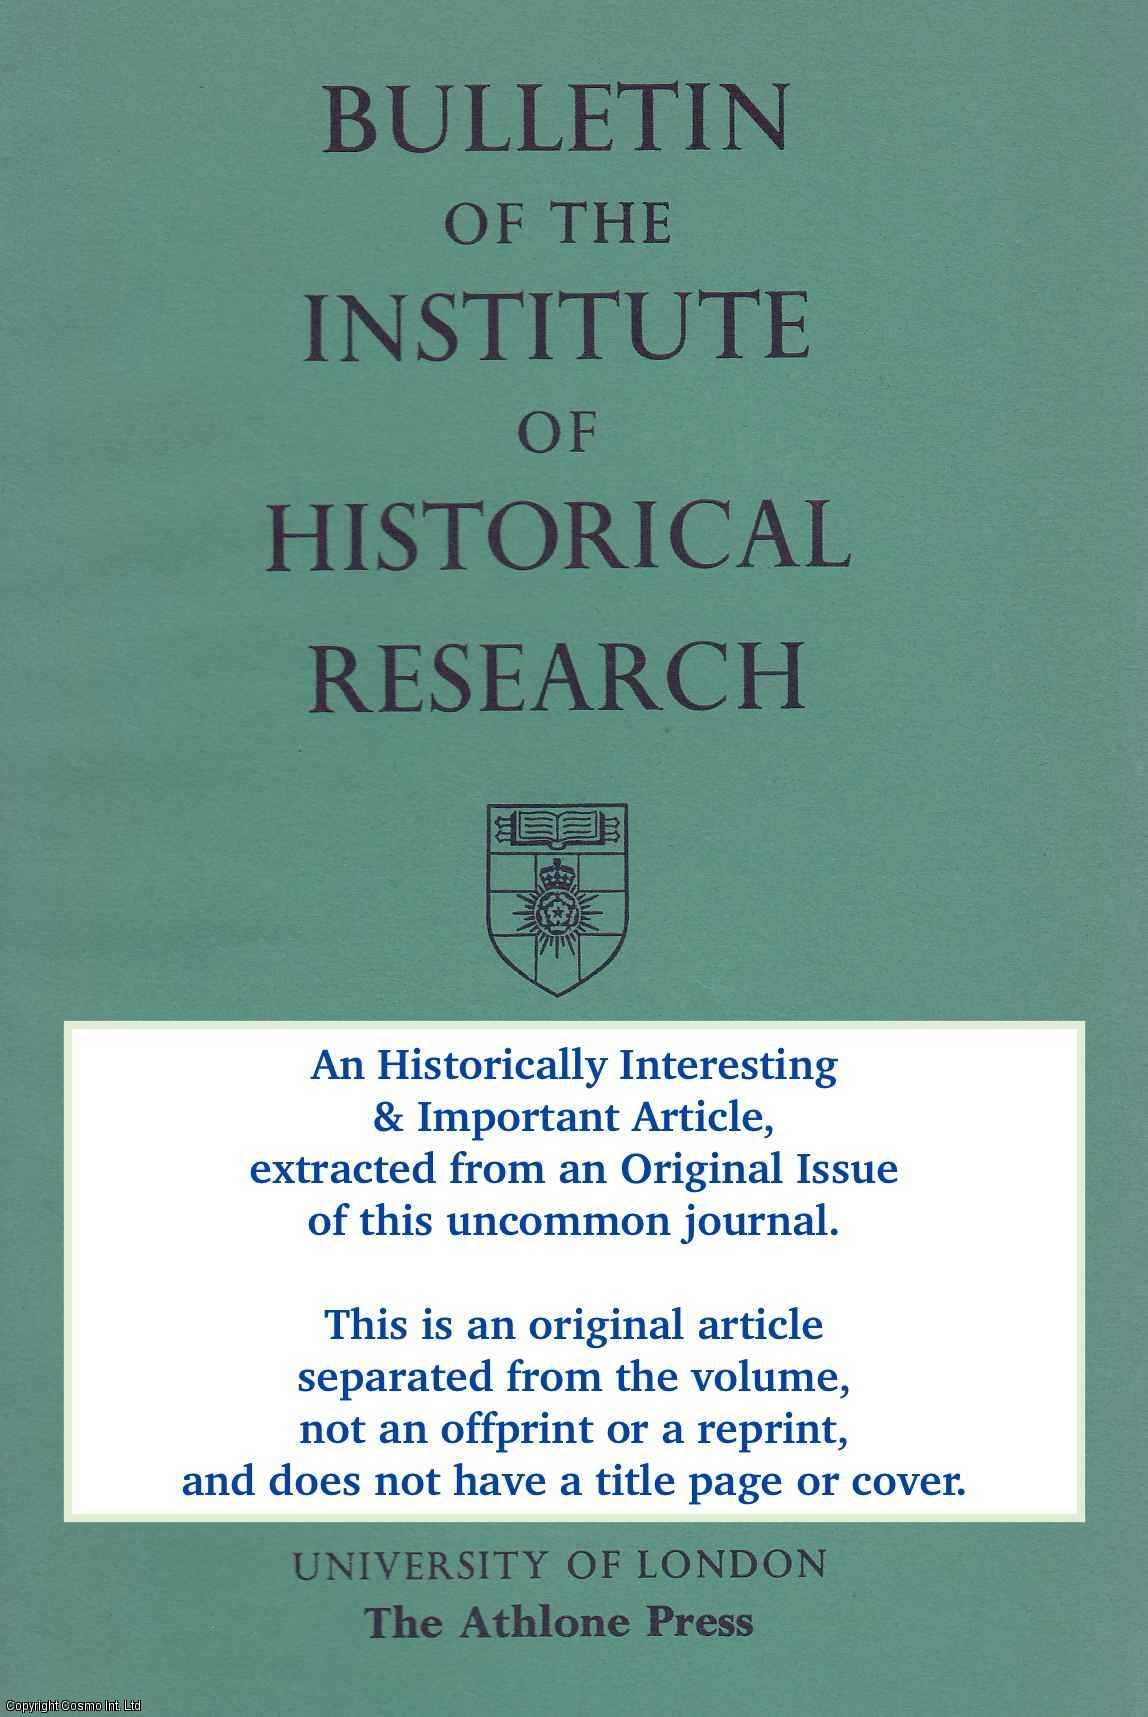 BJERSBY, MARTIN - The Swedish National Register of Private Archives. An original article from the Bulletin of The Institute of Historical Research 1995.